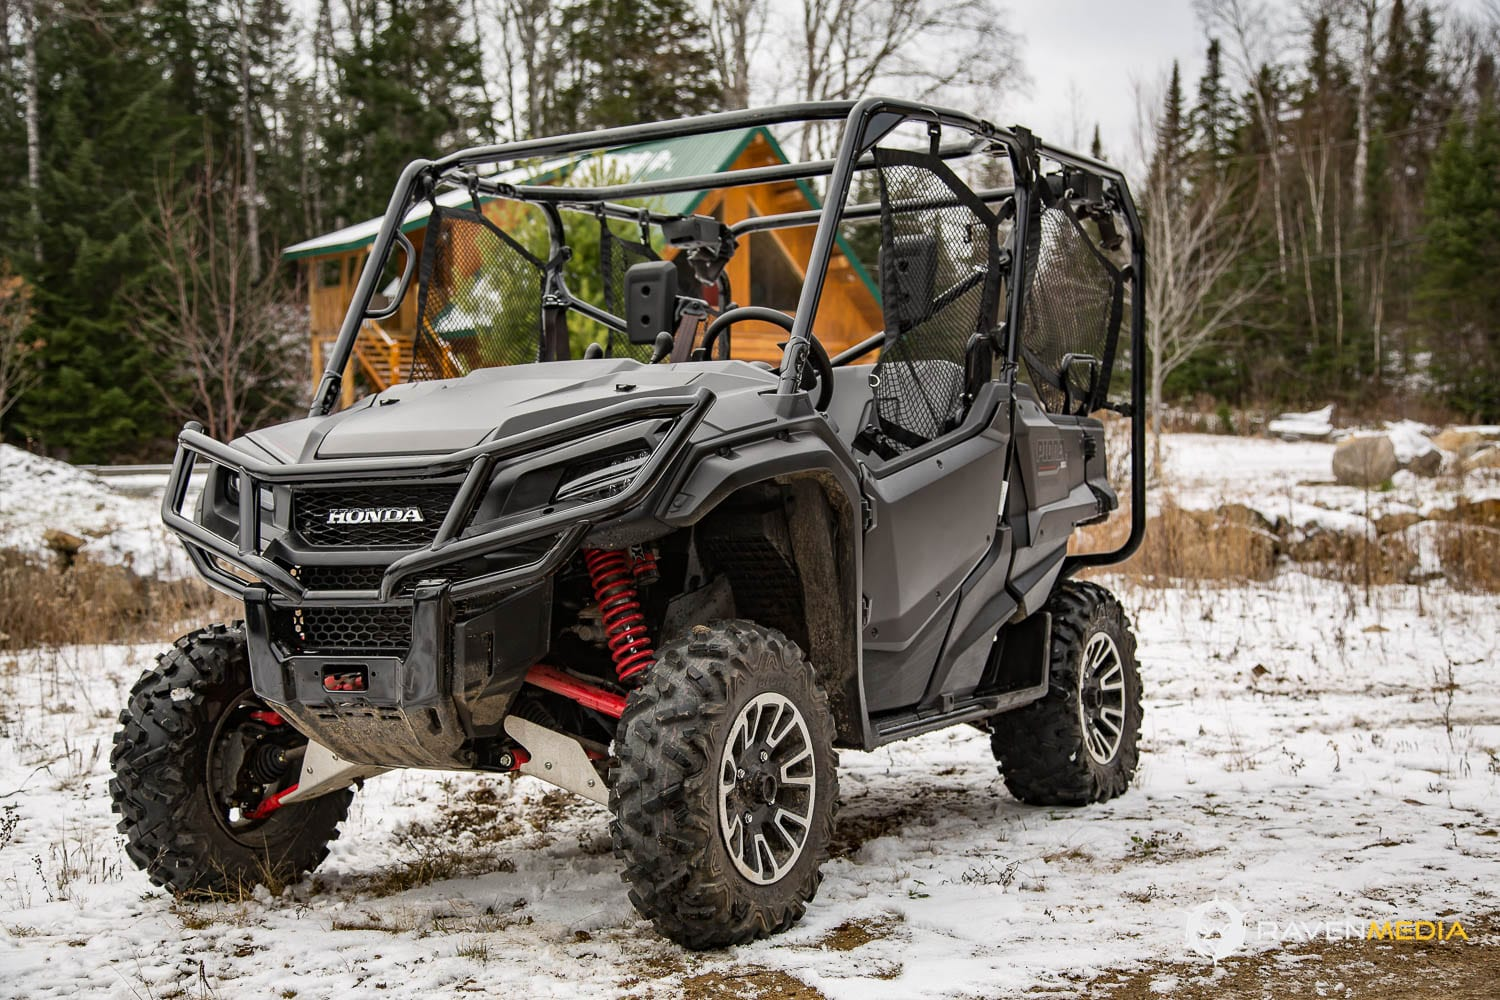 Honda Pioneer 1000 Review >> 2018 Honda Pioneer 1000 5 Eps Le Review Atv Trail Rider Magazine